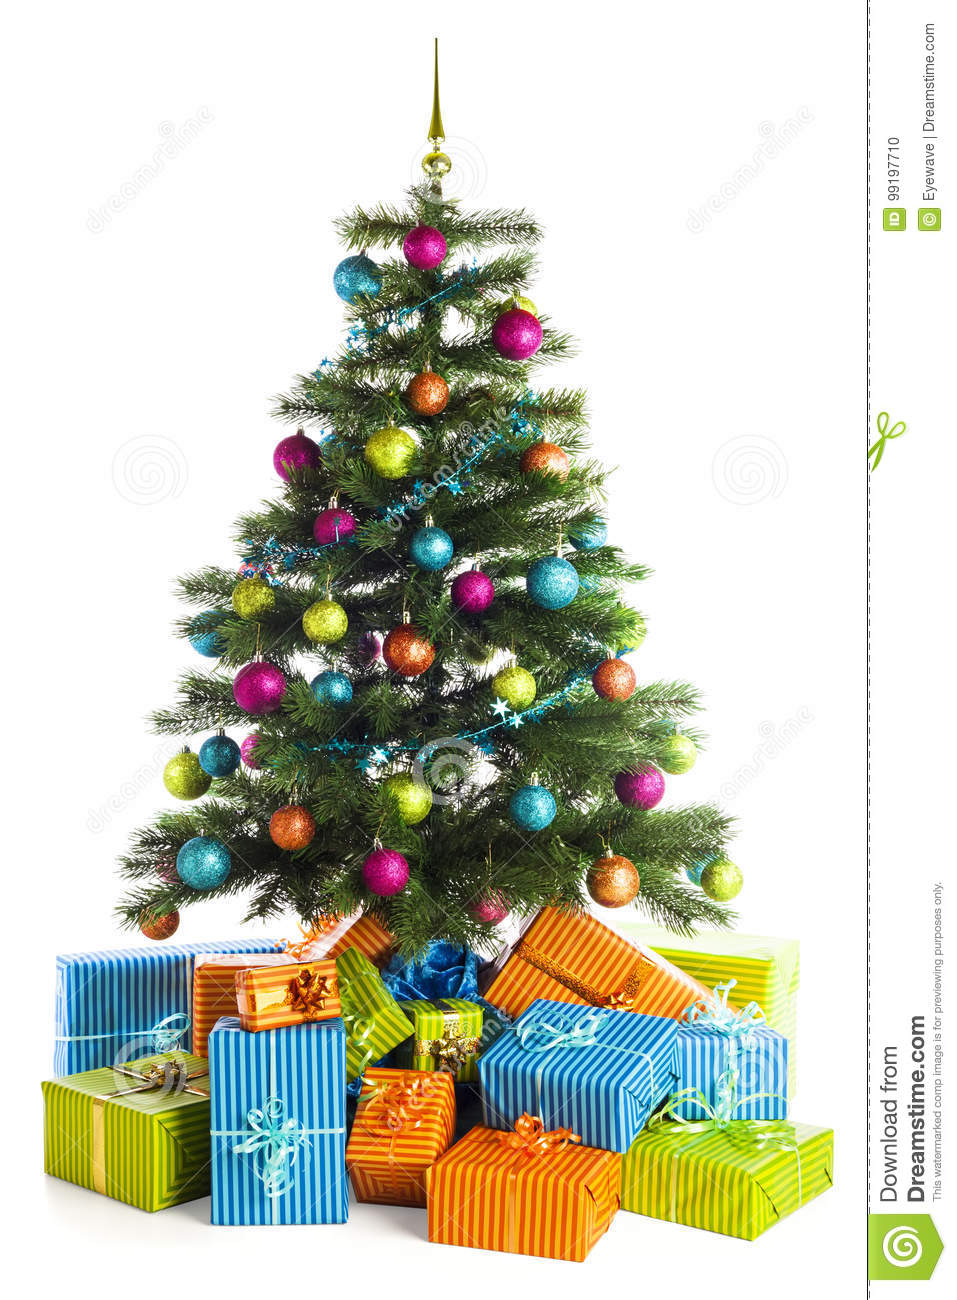 decorated christmas tree and gift boxes - Decorative Christmas Boxes